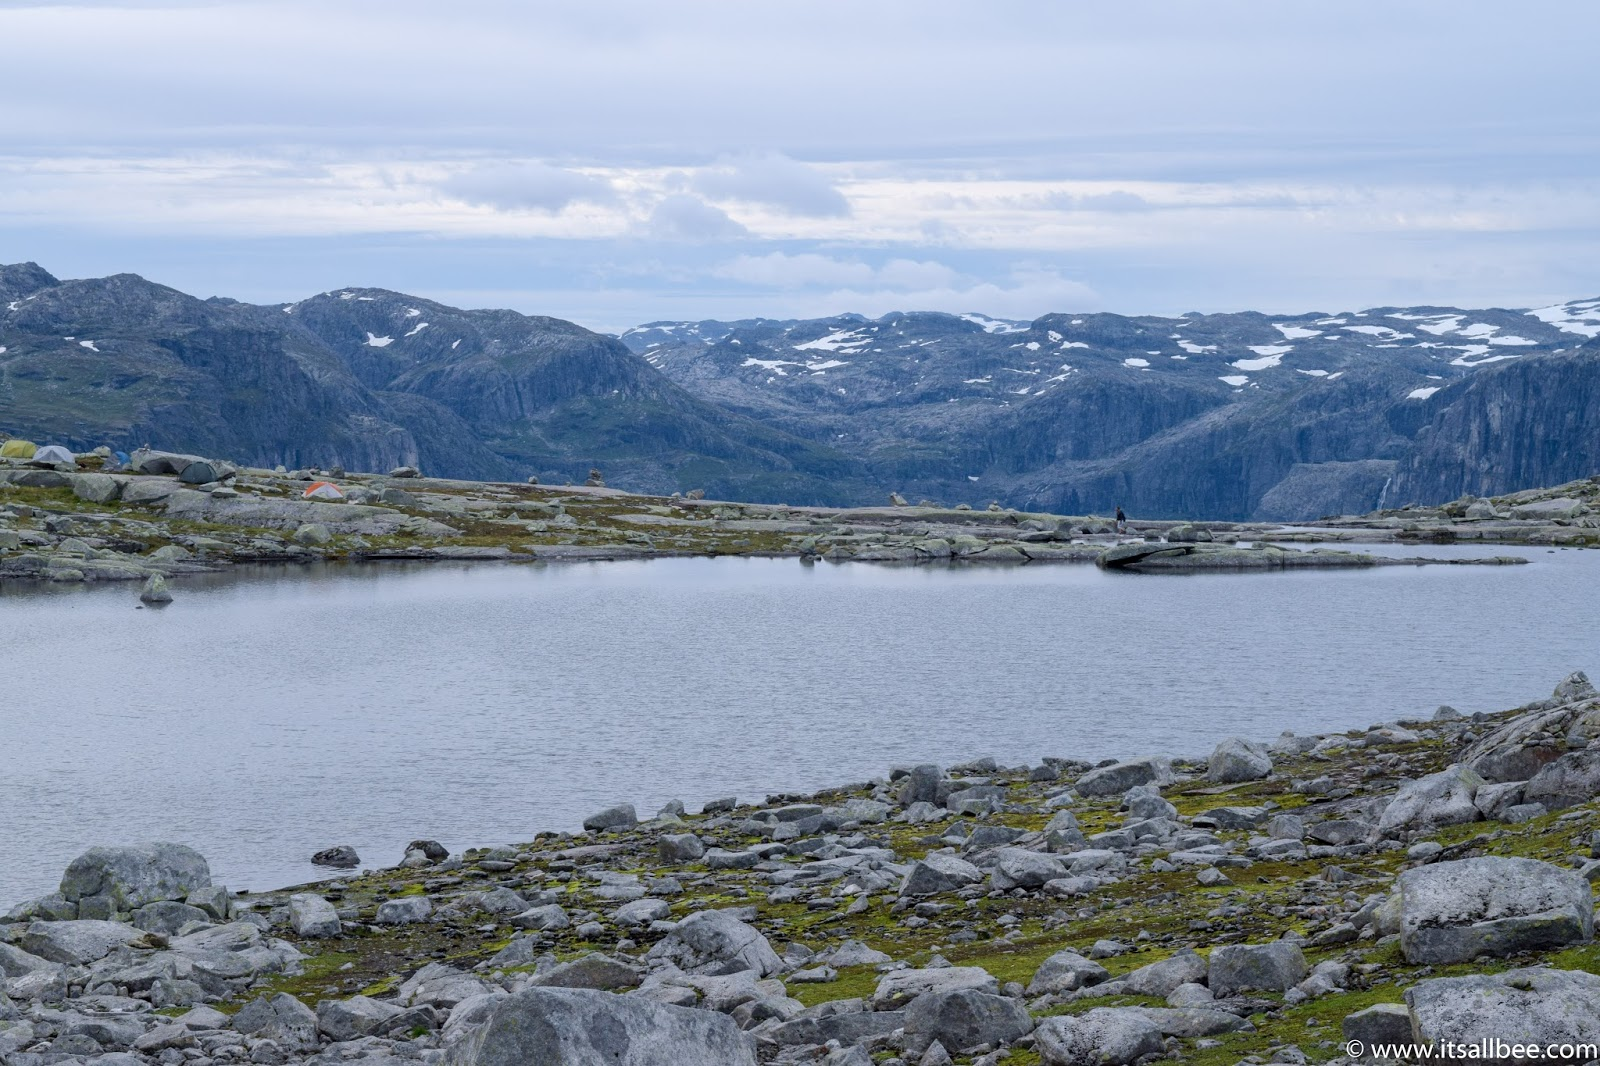 trolltunga hike guide, camping trolltunga, trolltunga parking, trolltunga blog post,